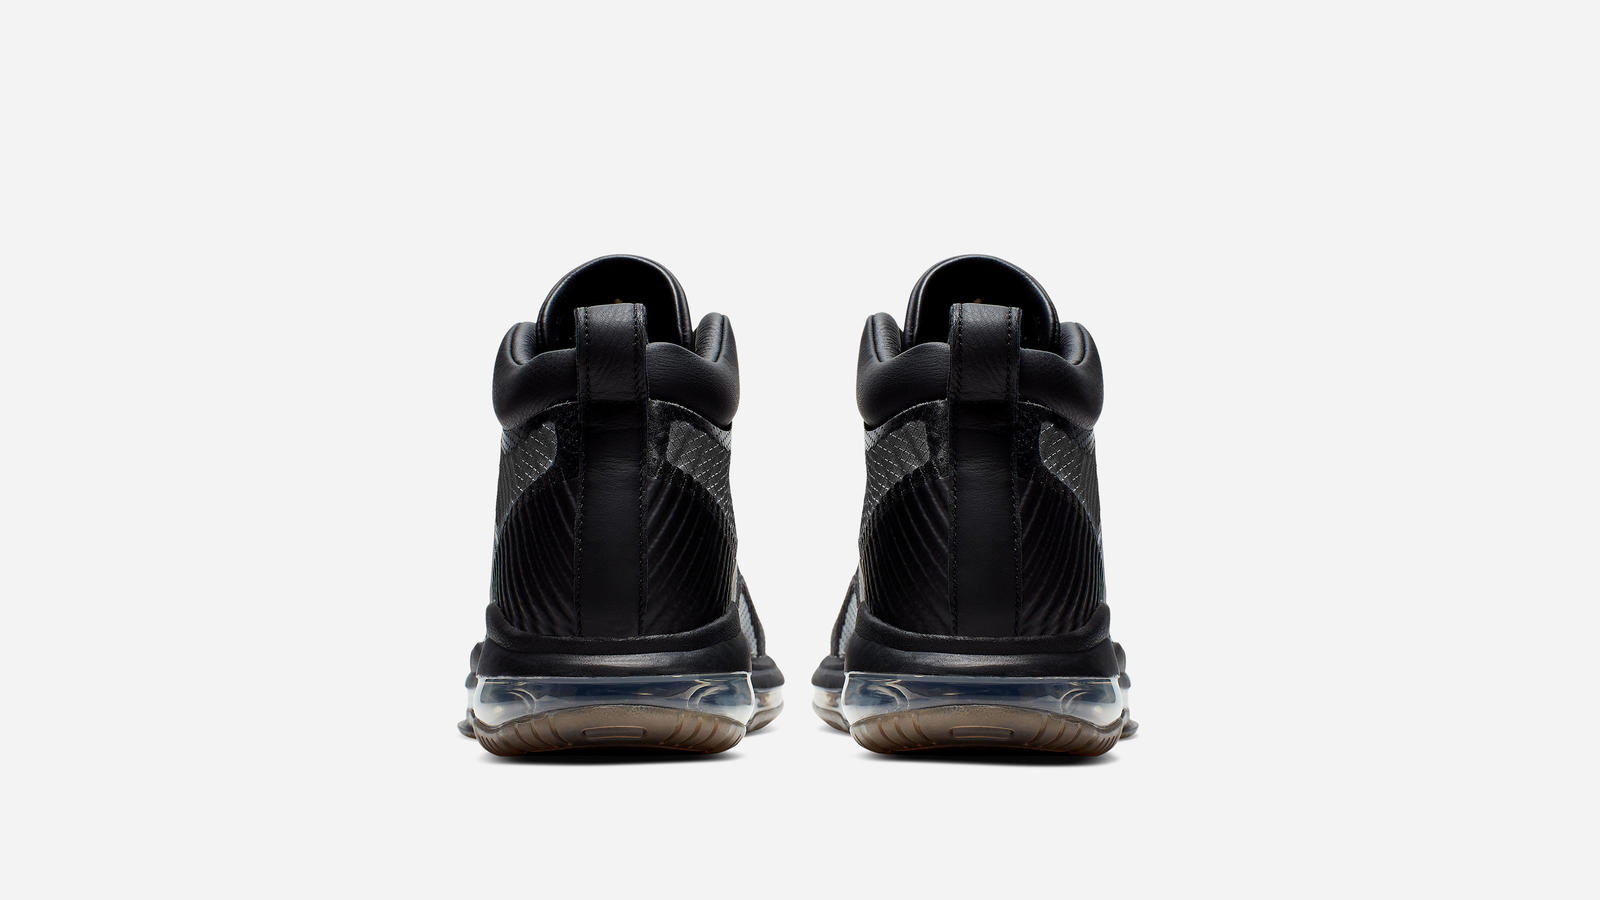 LeBron James x John Elliot Icon QS (Black) 7